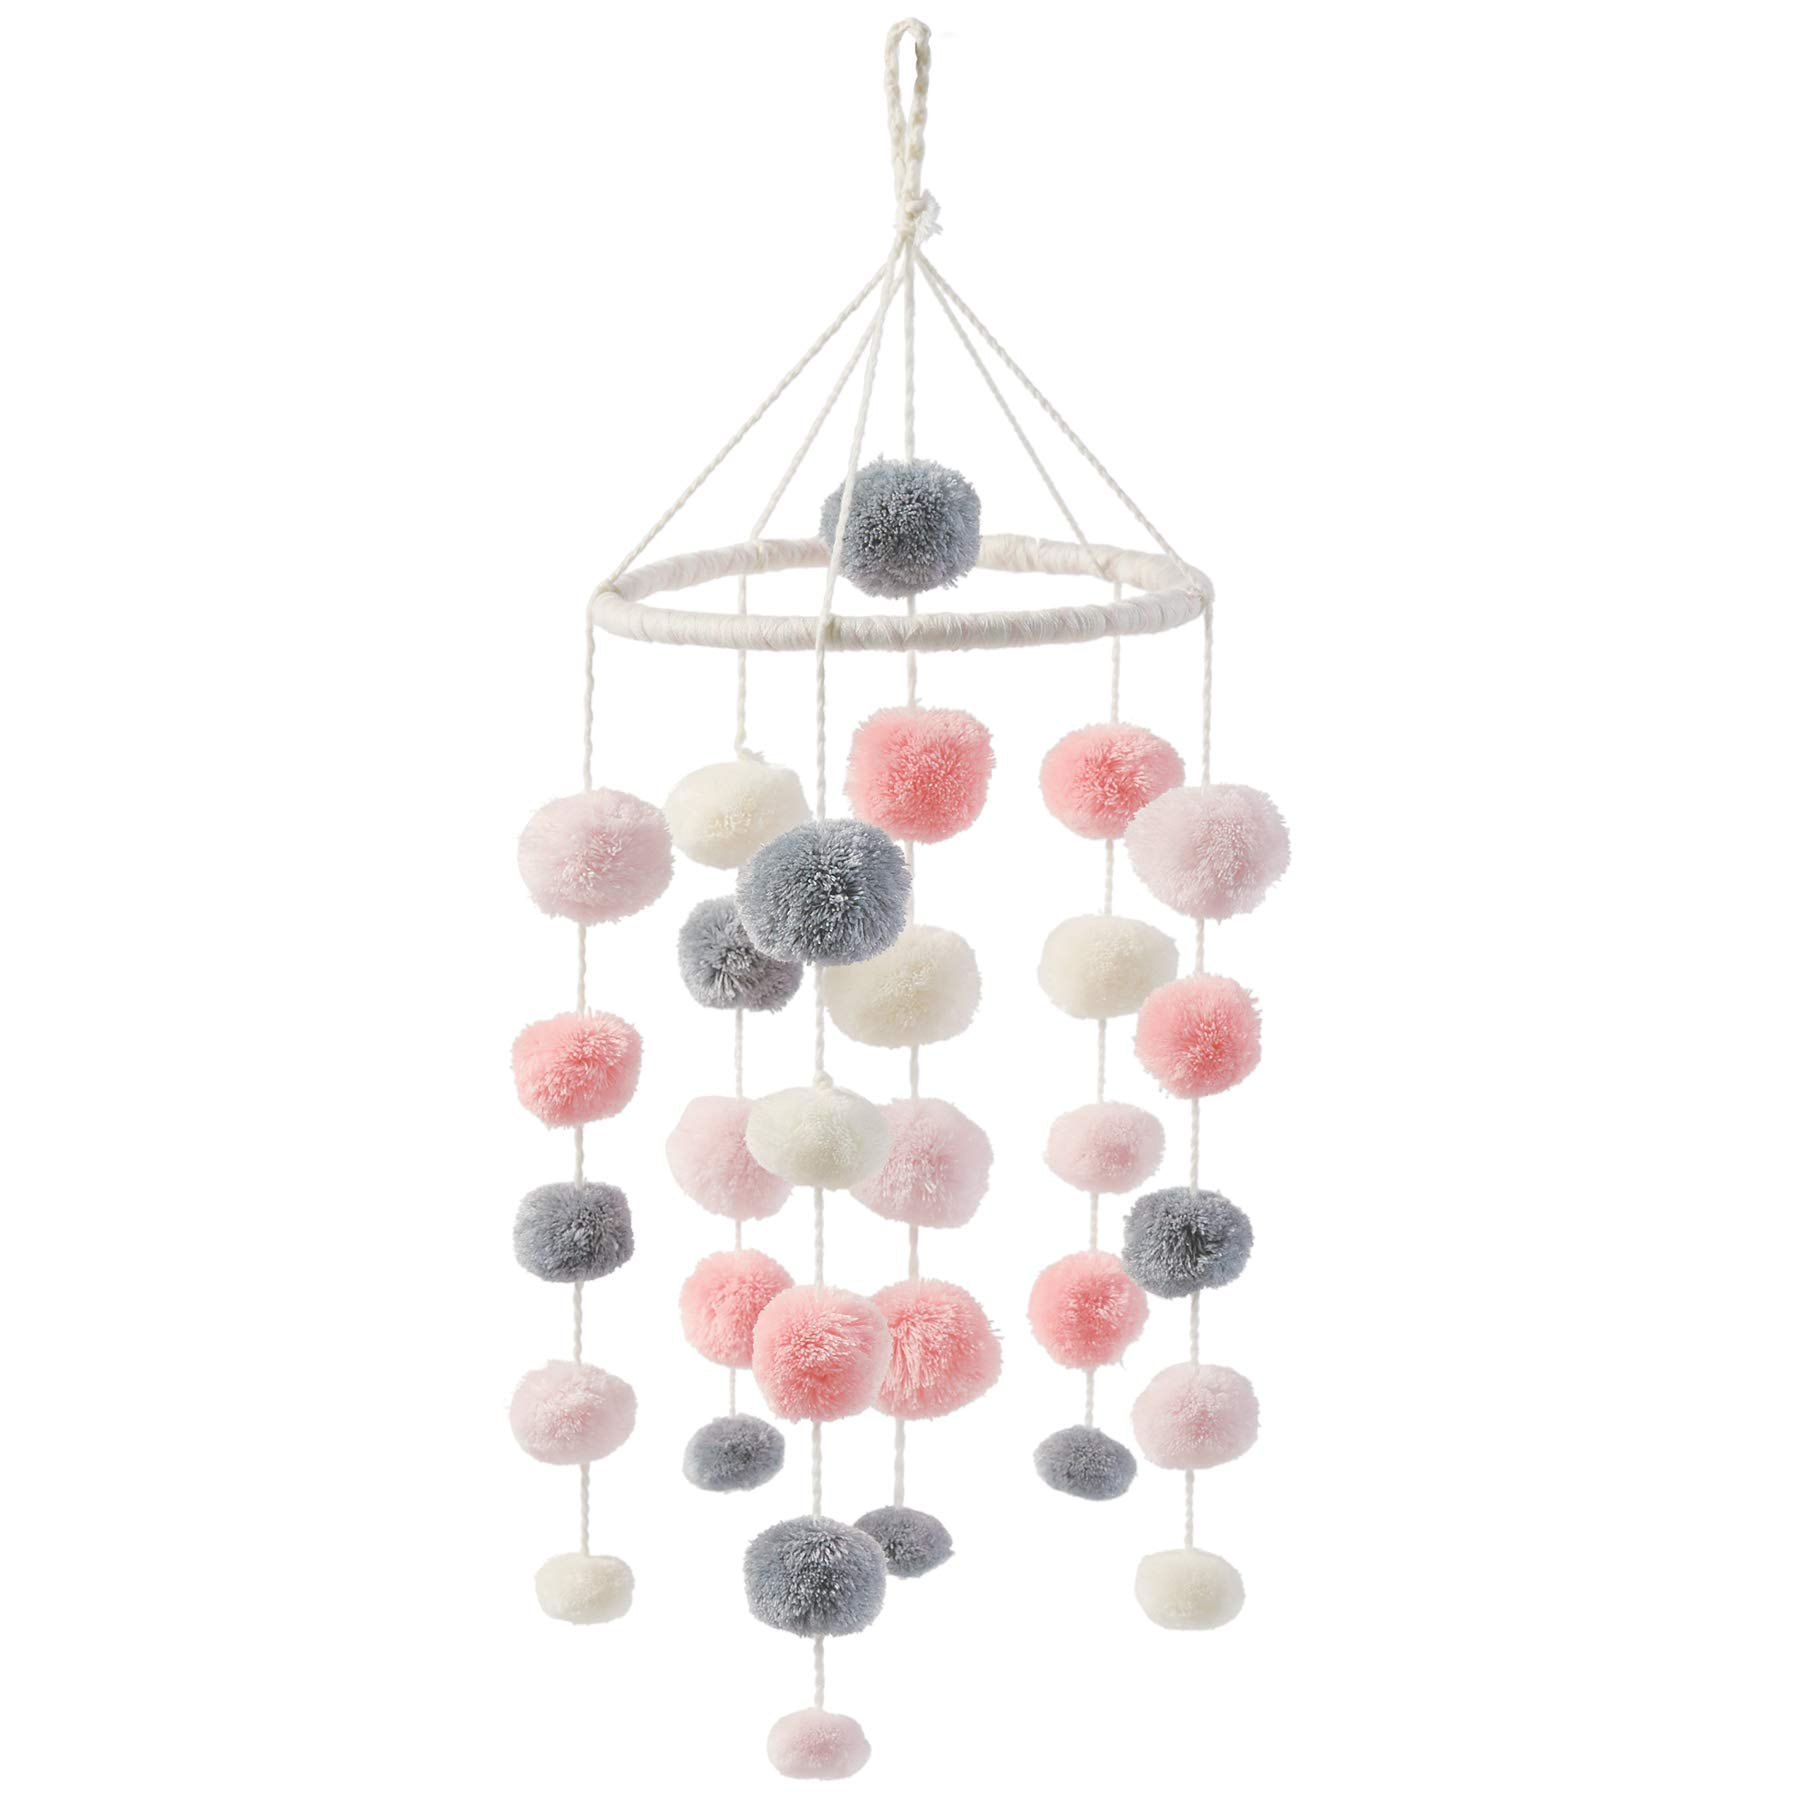 Mud Pie Pom Pom Crib Mobile - Pink and Grey, Pink/Grey